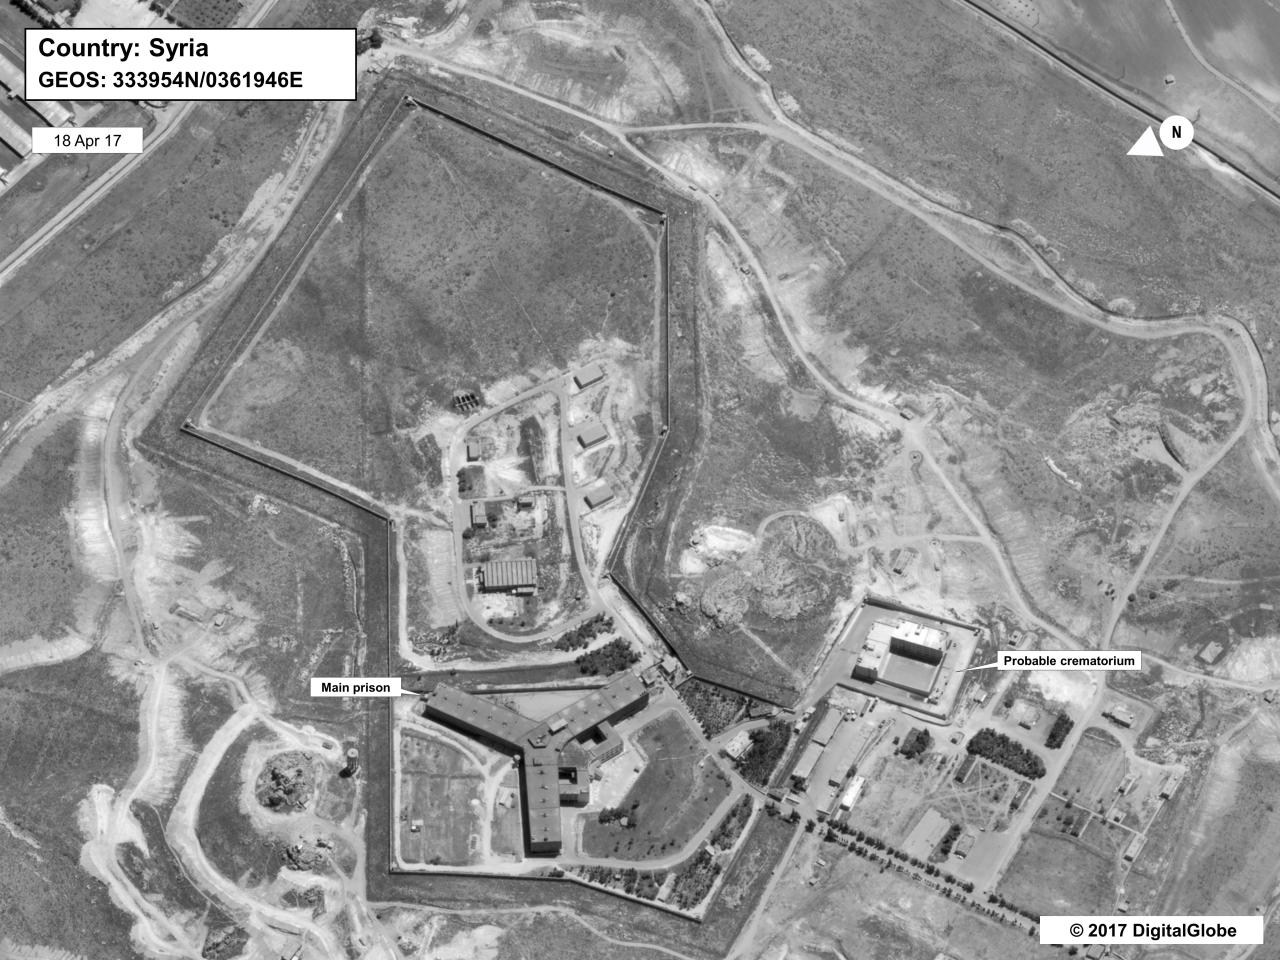 """FILE - This April 18, 2017 file satellite image provided by the State Department and DigitalGlobe, shows what the State Department described as a building in a prison complex in Syria that was modified to support a crematorium. The Syria Justice and Accountability Center, a Washington-based Syrian rights group said in a report, released Tuesday, May 21, 2019, that thousands of documents collected from abandoned Syrian government offices reveal the reach of President Bashar Assad's security agencies, offering a rare glimpse into the inner workings of his secretive apparatus. The documents include handwritten notes from top commanders to """"do what is necessary"""" to quell anti-Assad protests. (State Department/DigitalGlobe via AP, File)"""